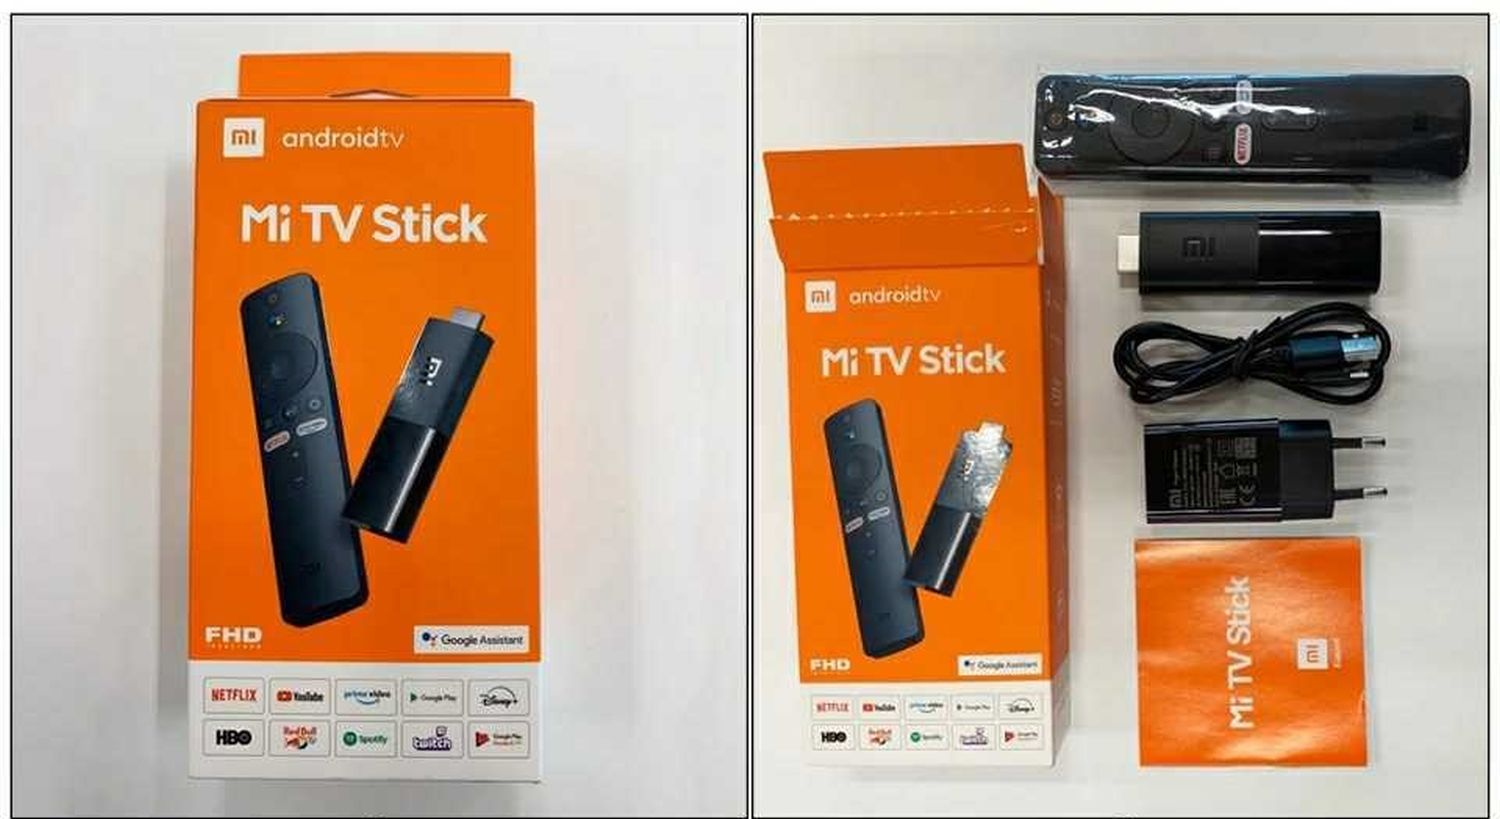 xiaomi mi tv stick unboxing